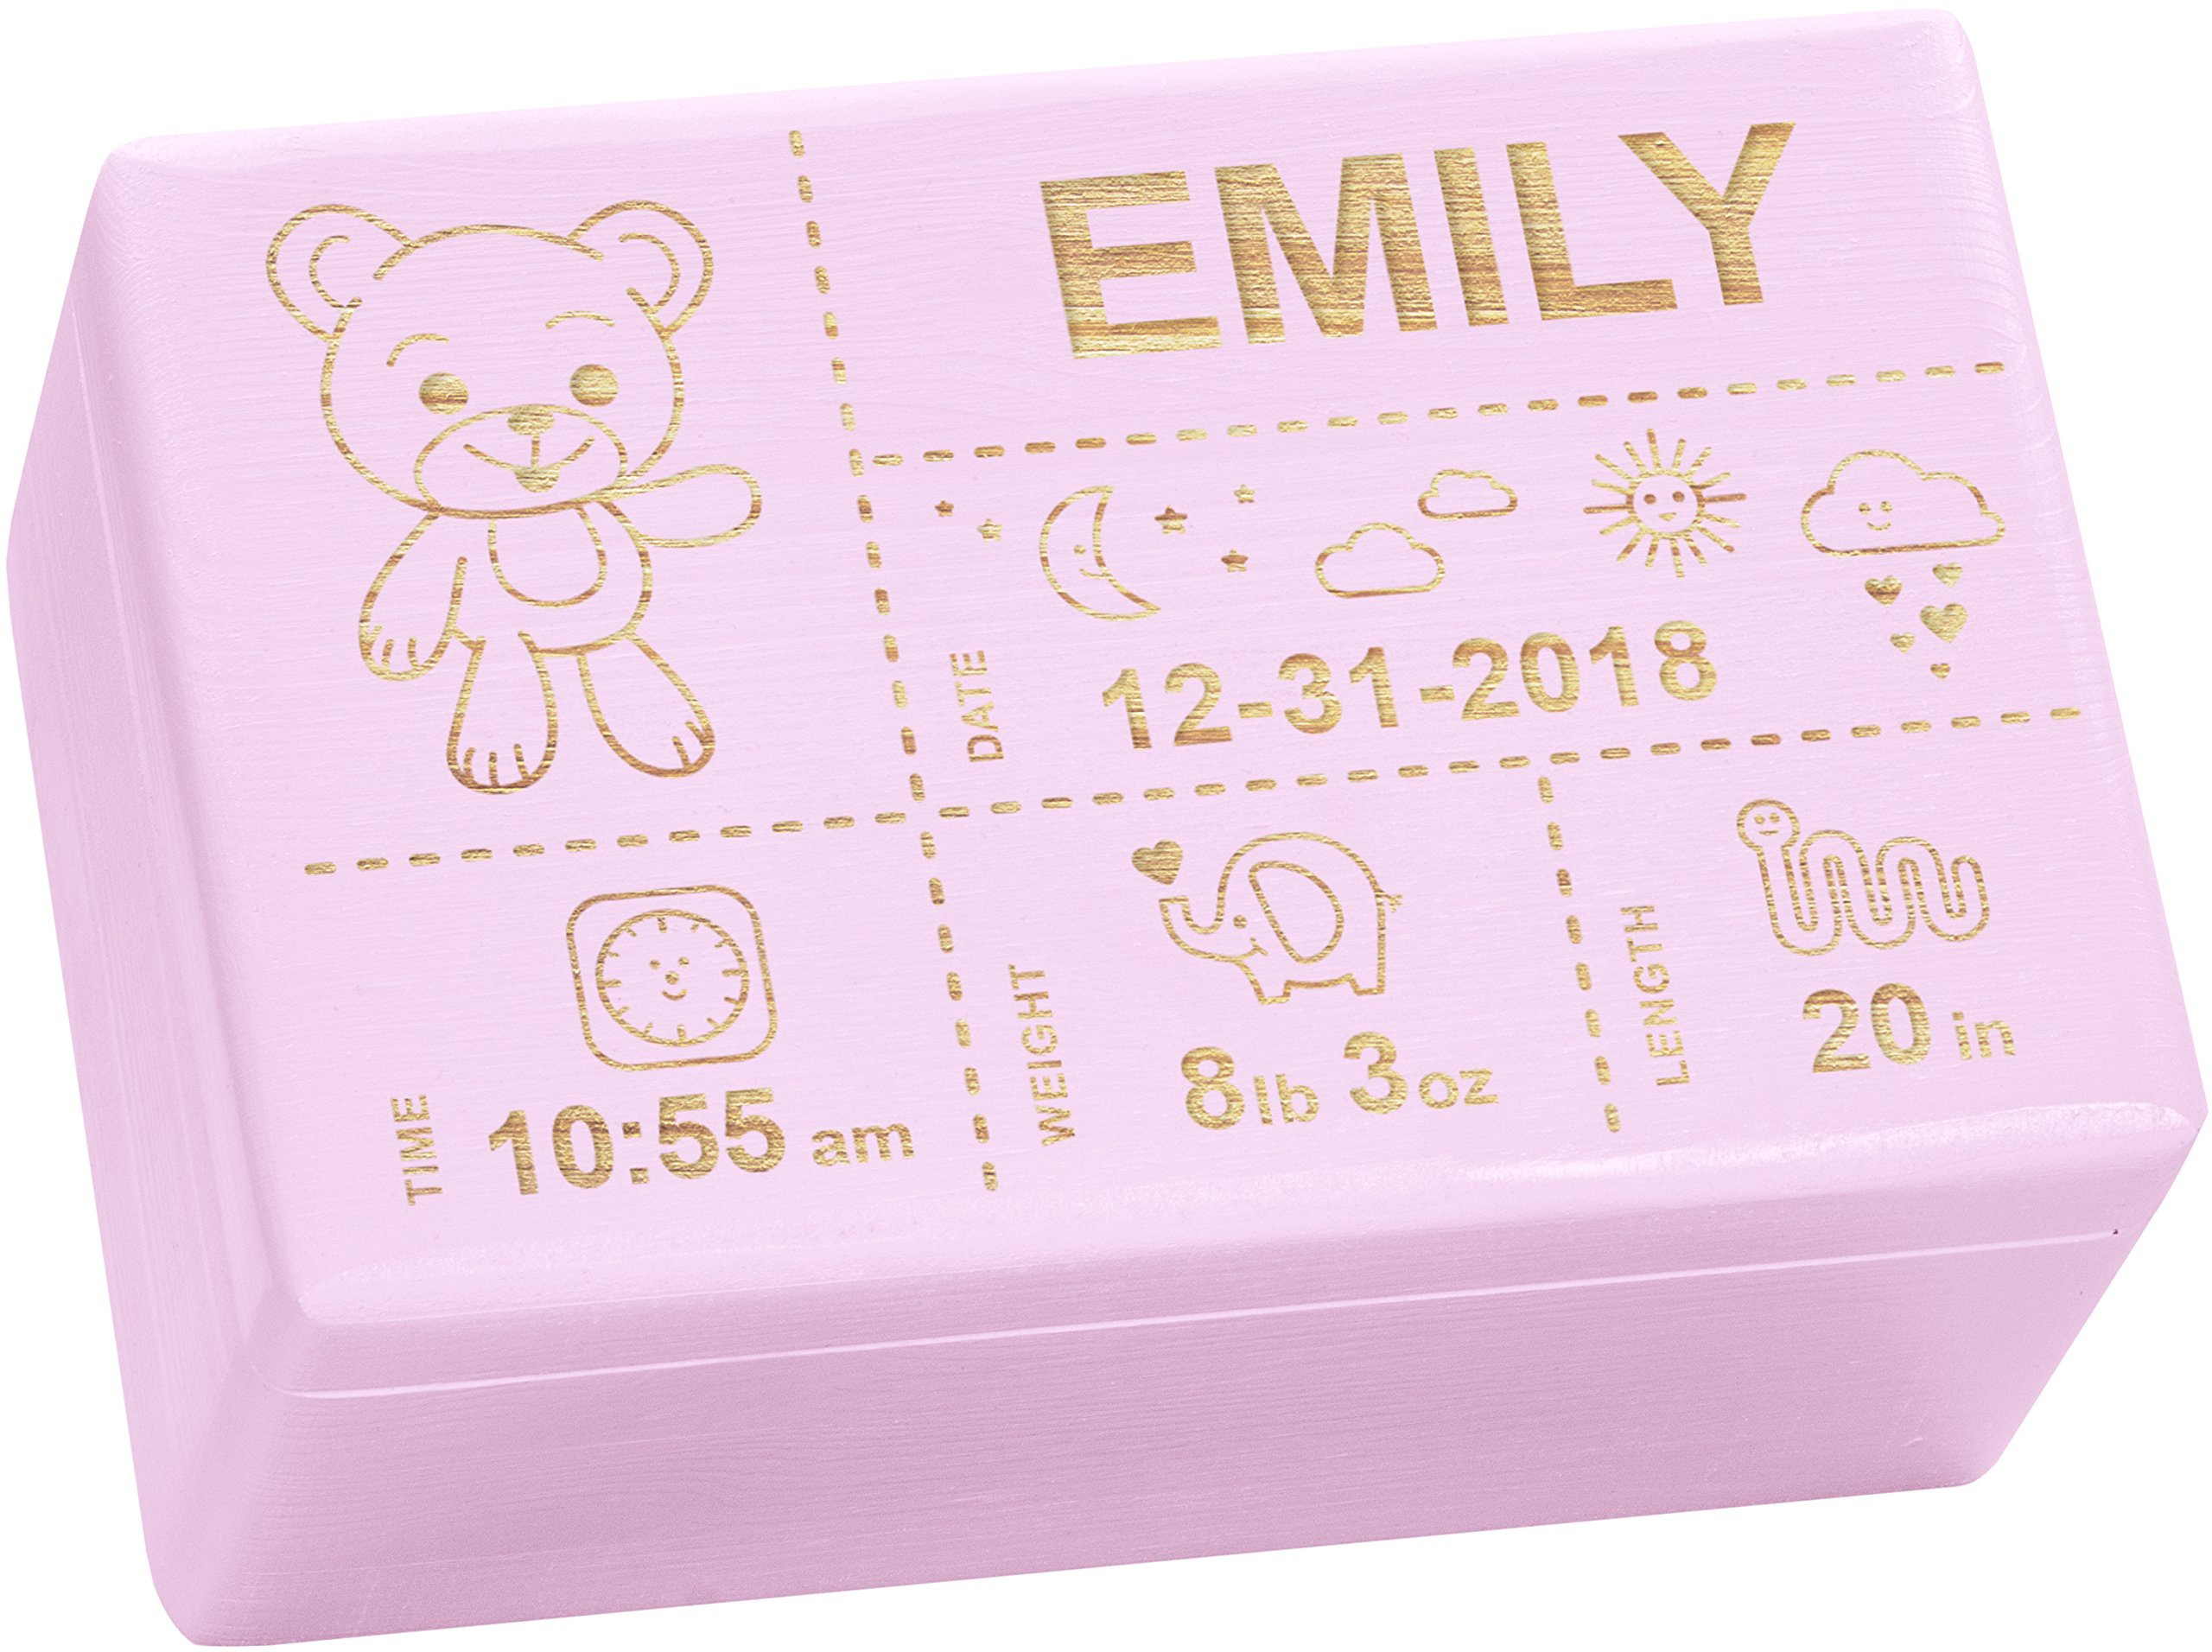 LAUBLUST Engraved Wooden Memory Box - Size L, 12x8x6in - ❤️ Personalized ❤️ Baby Keepsake Box - Teddy Design | Painted Pink - Made in Germany